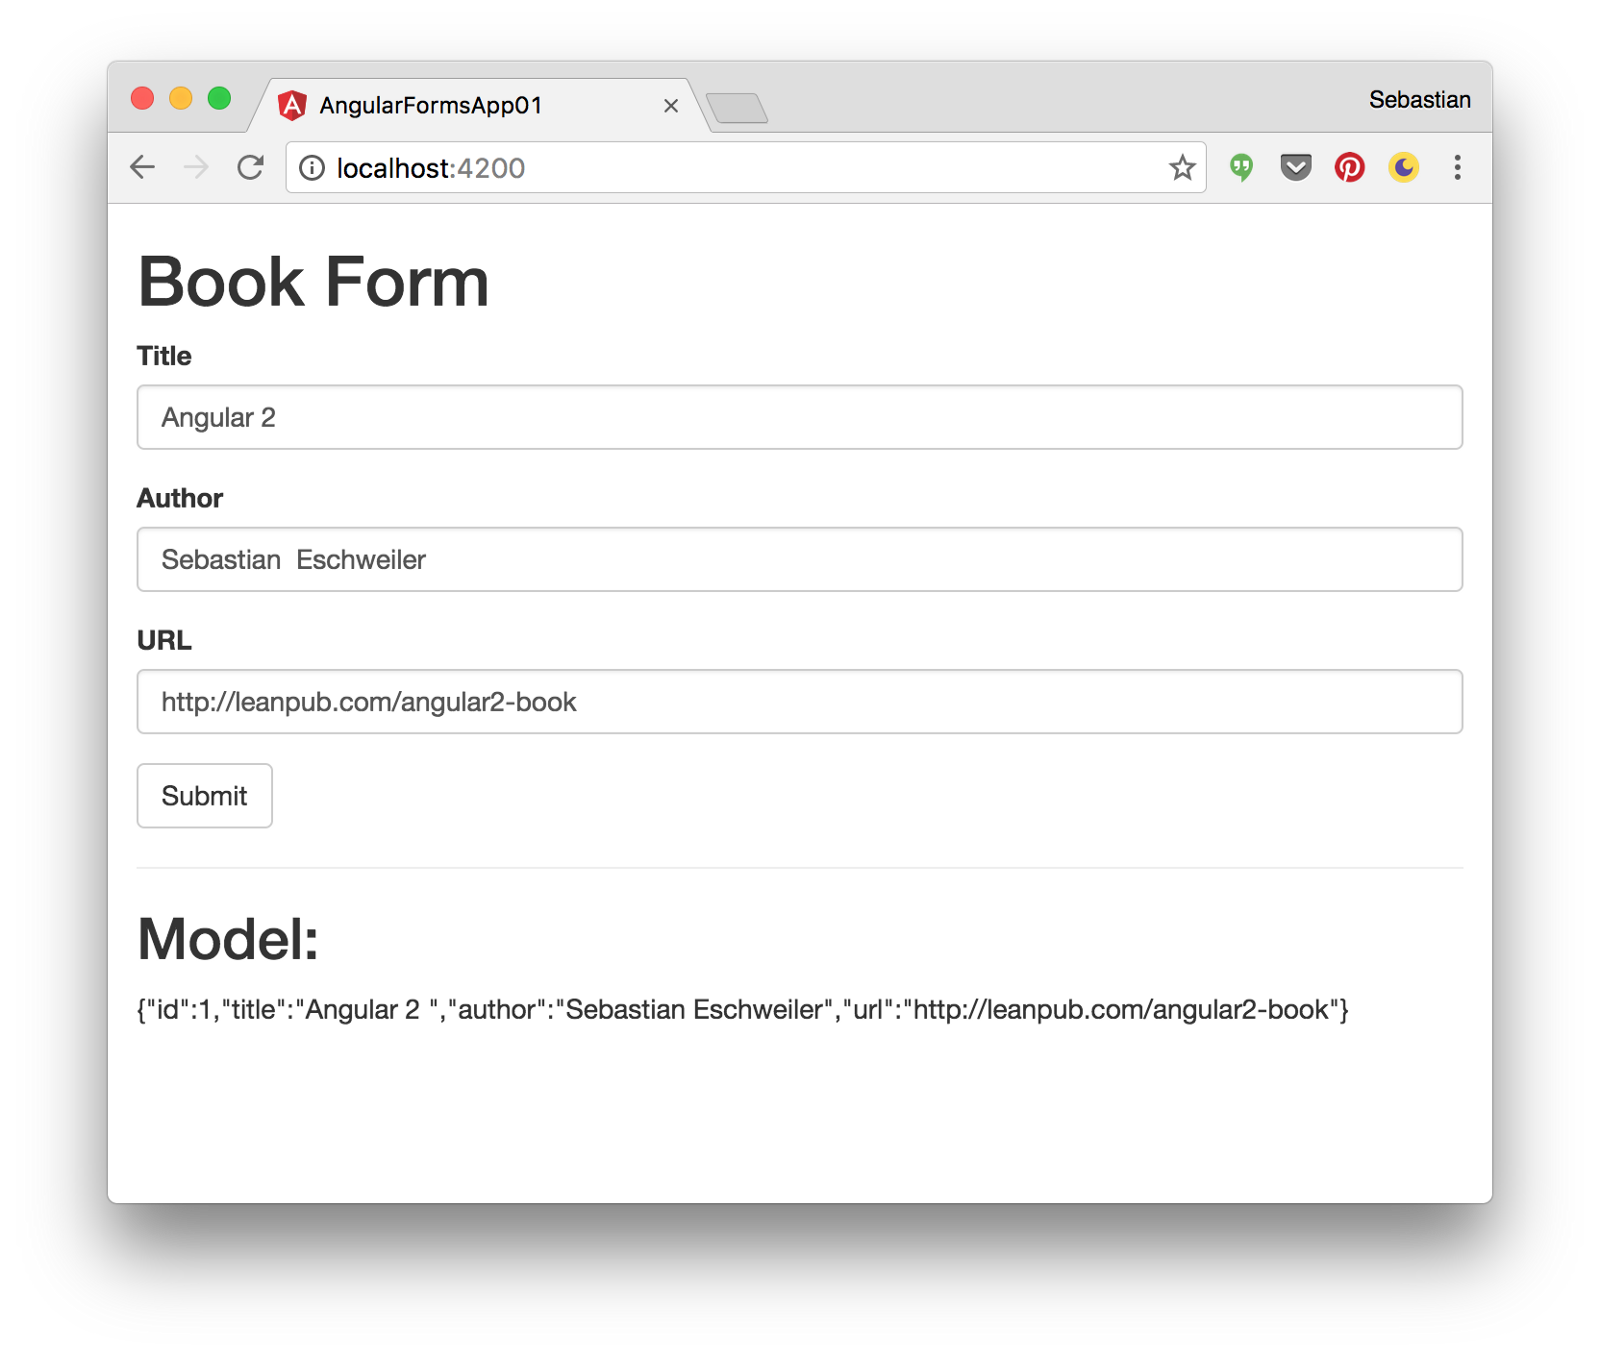 This Form Has Been Implemented By Using The Template Driven Forms Approach Of Angular 2 Means That A Components Was Used To Arrange